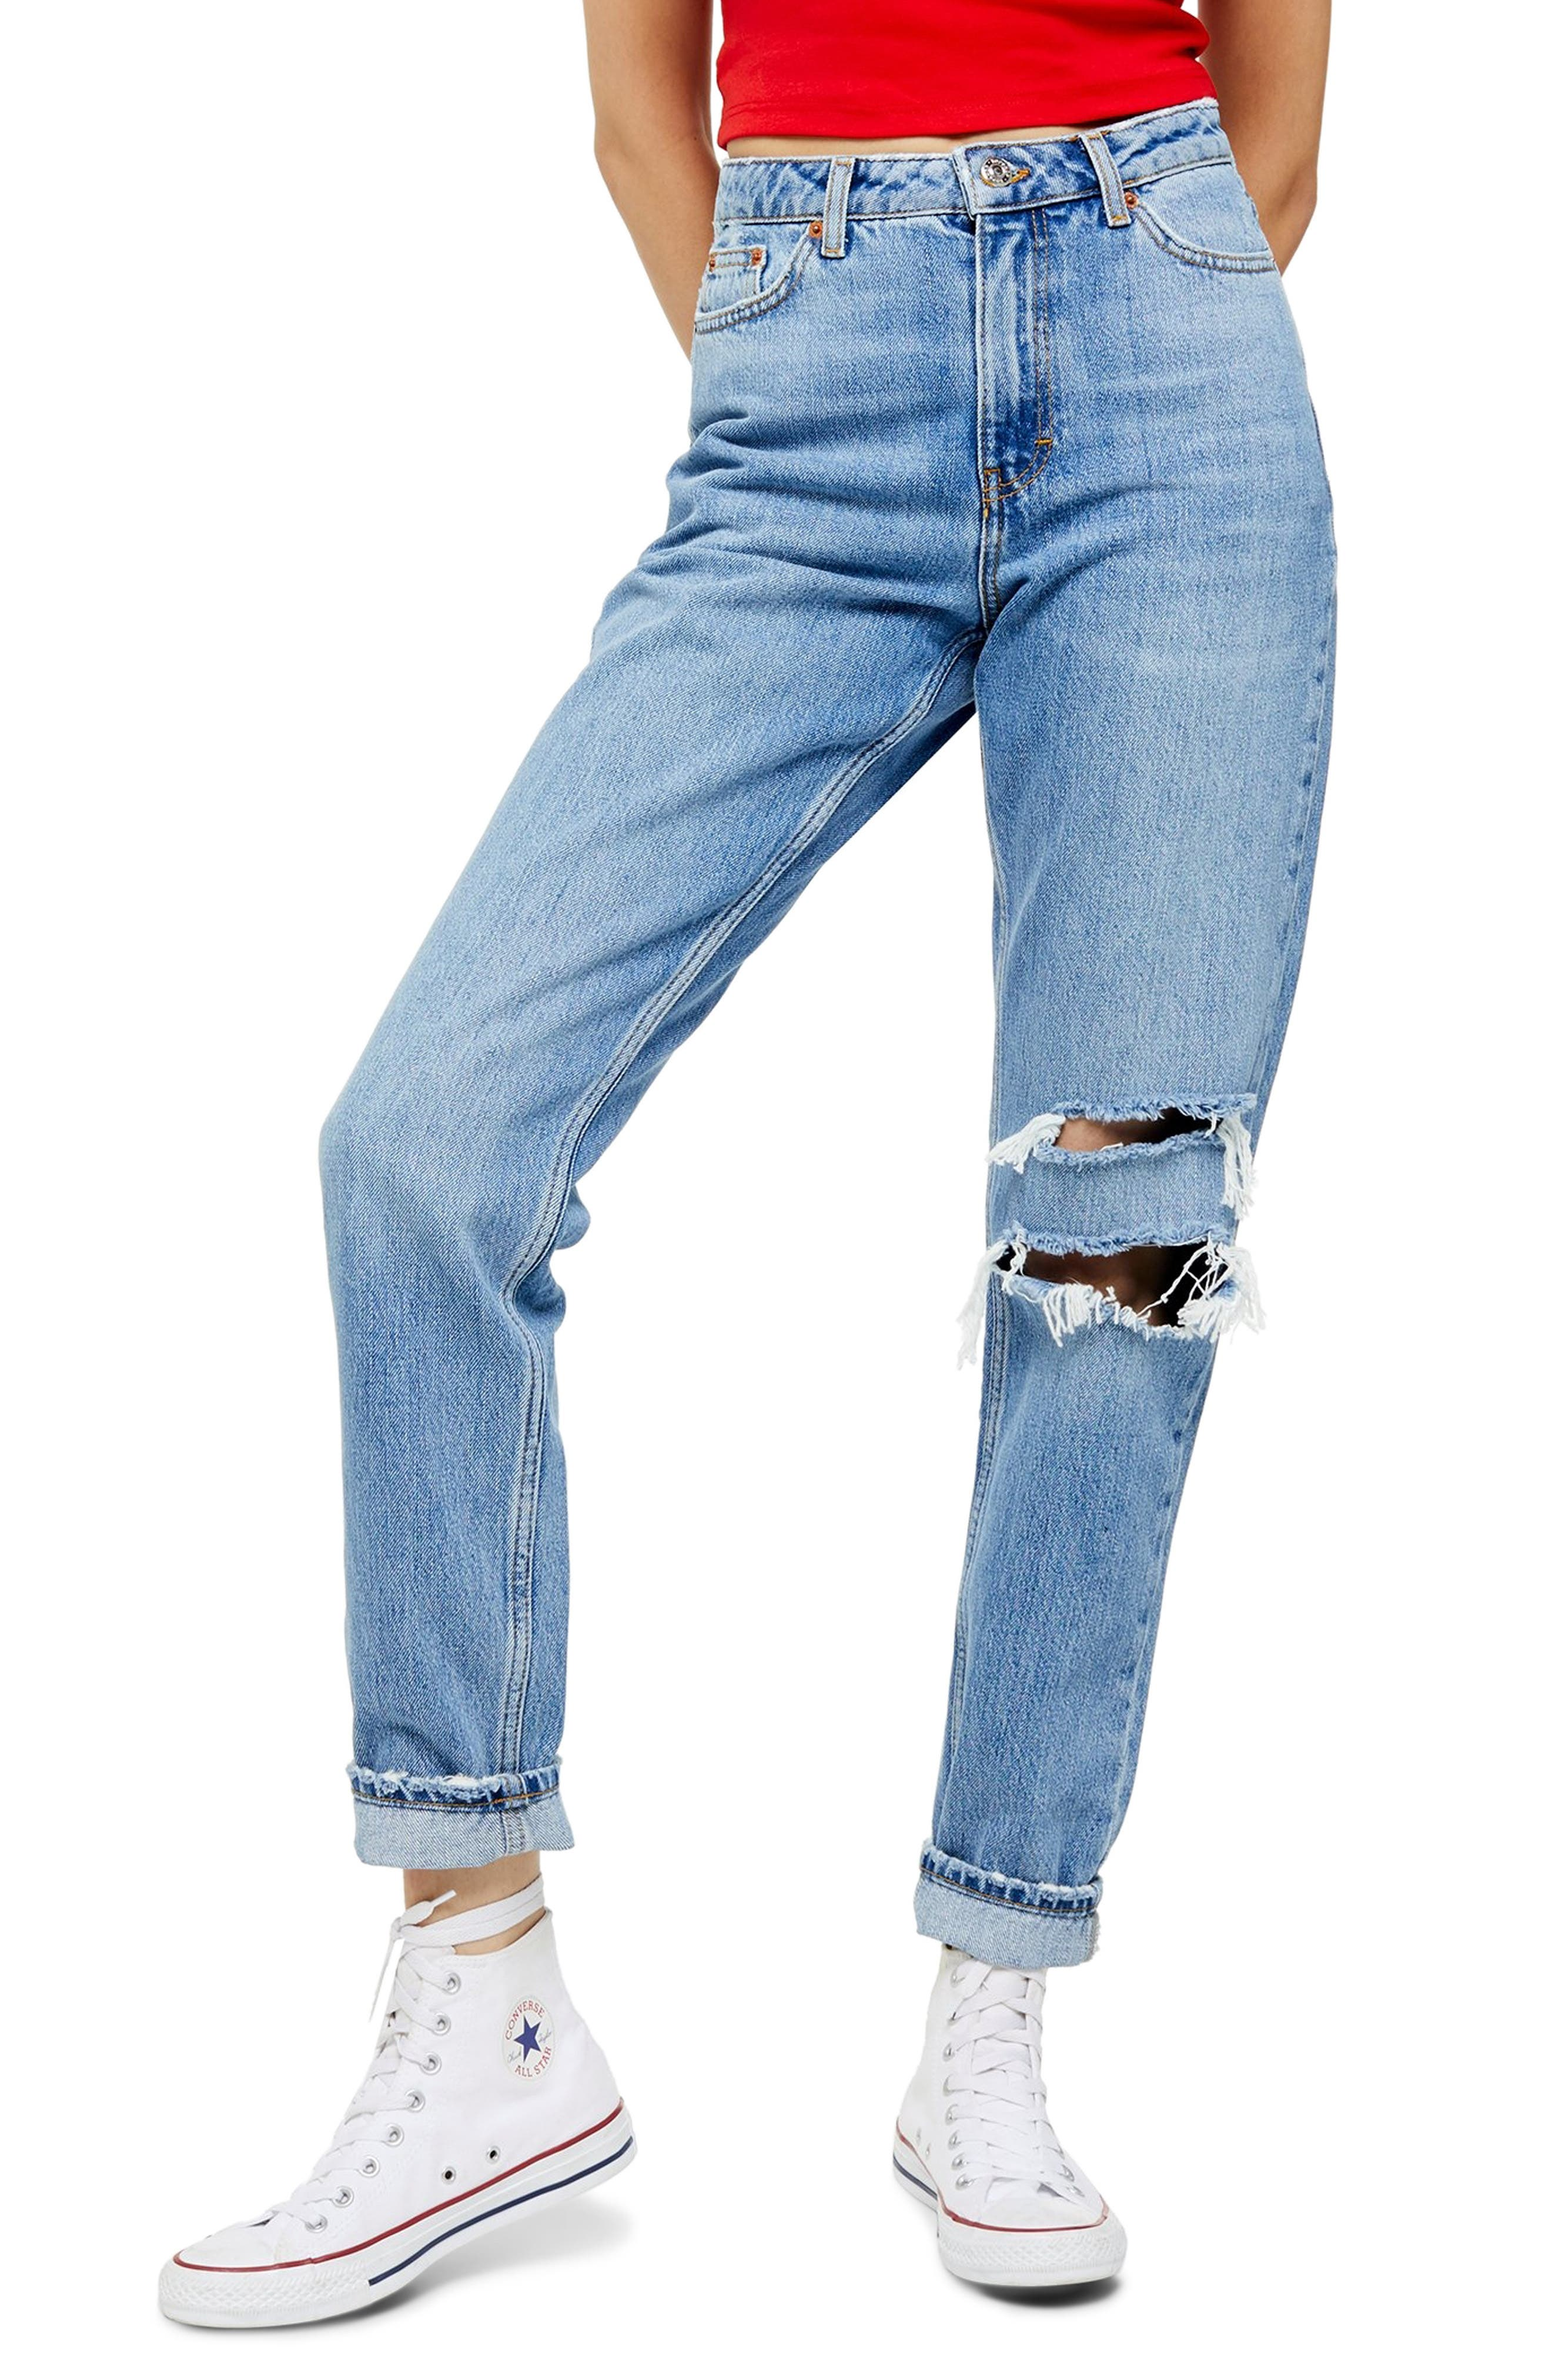 Topshop Seoul Ripped Mom Jeans